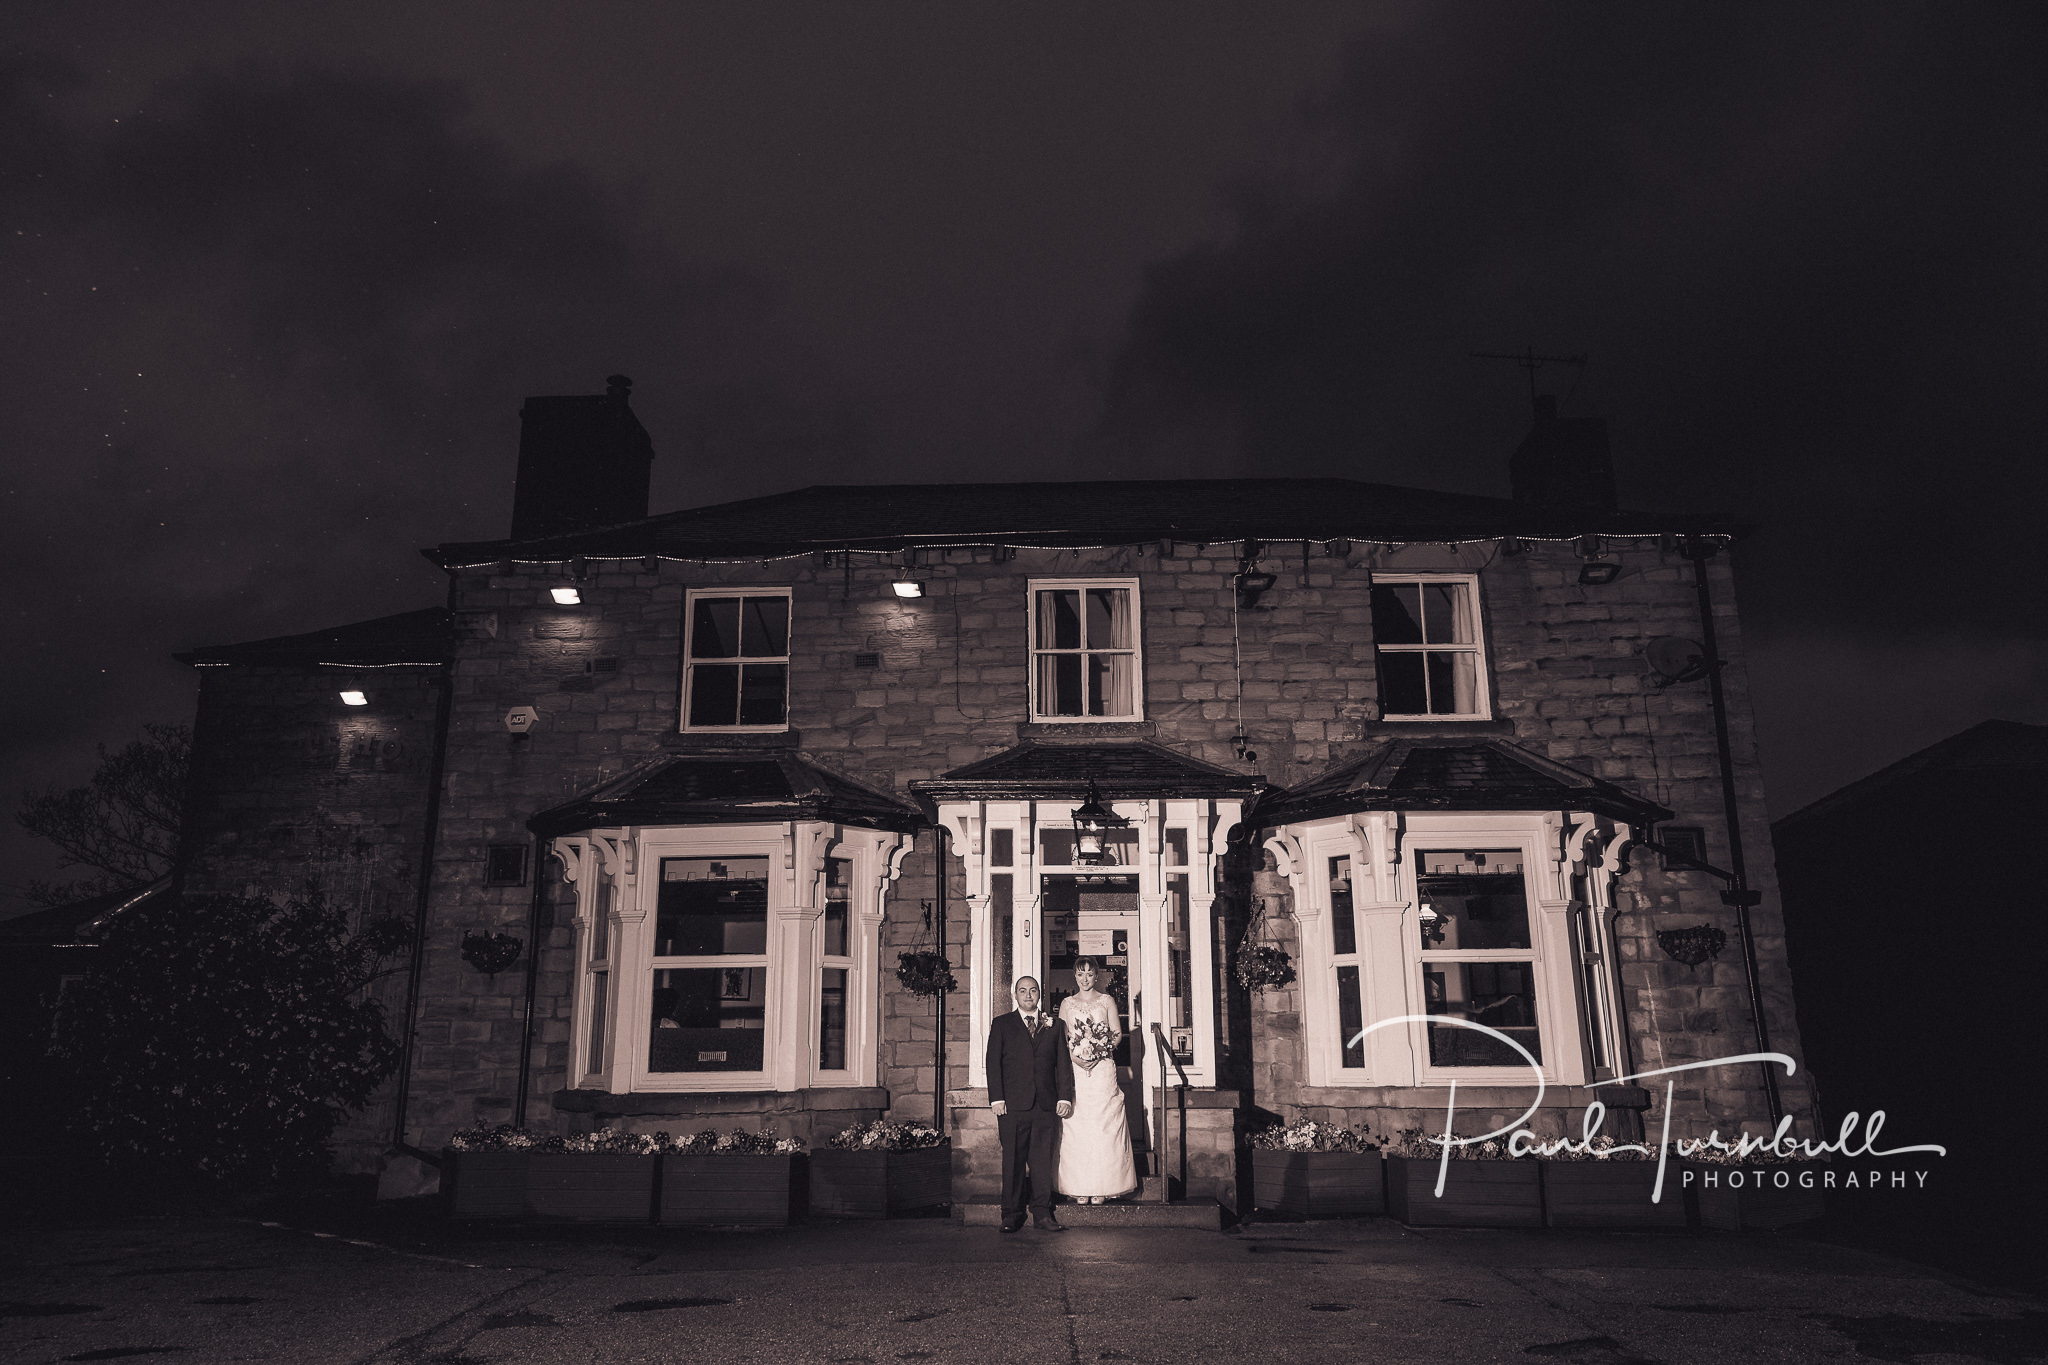 wedding-photographer-pontefract-yorkshire-laura-keanu-060.jpg